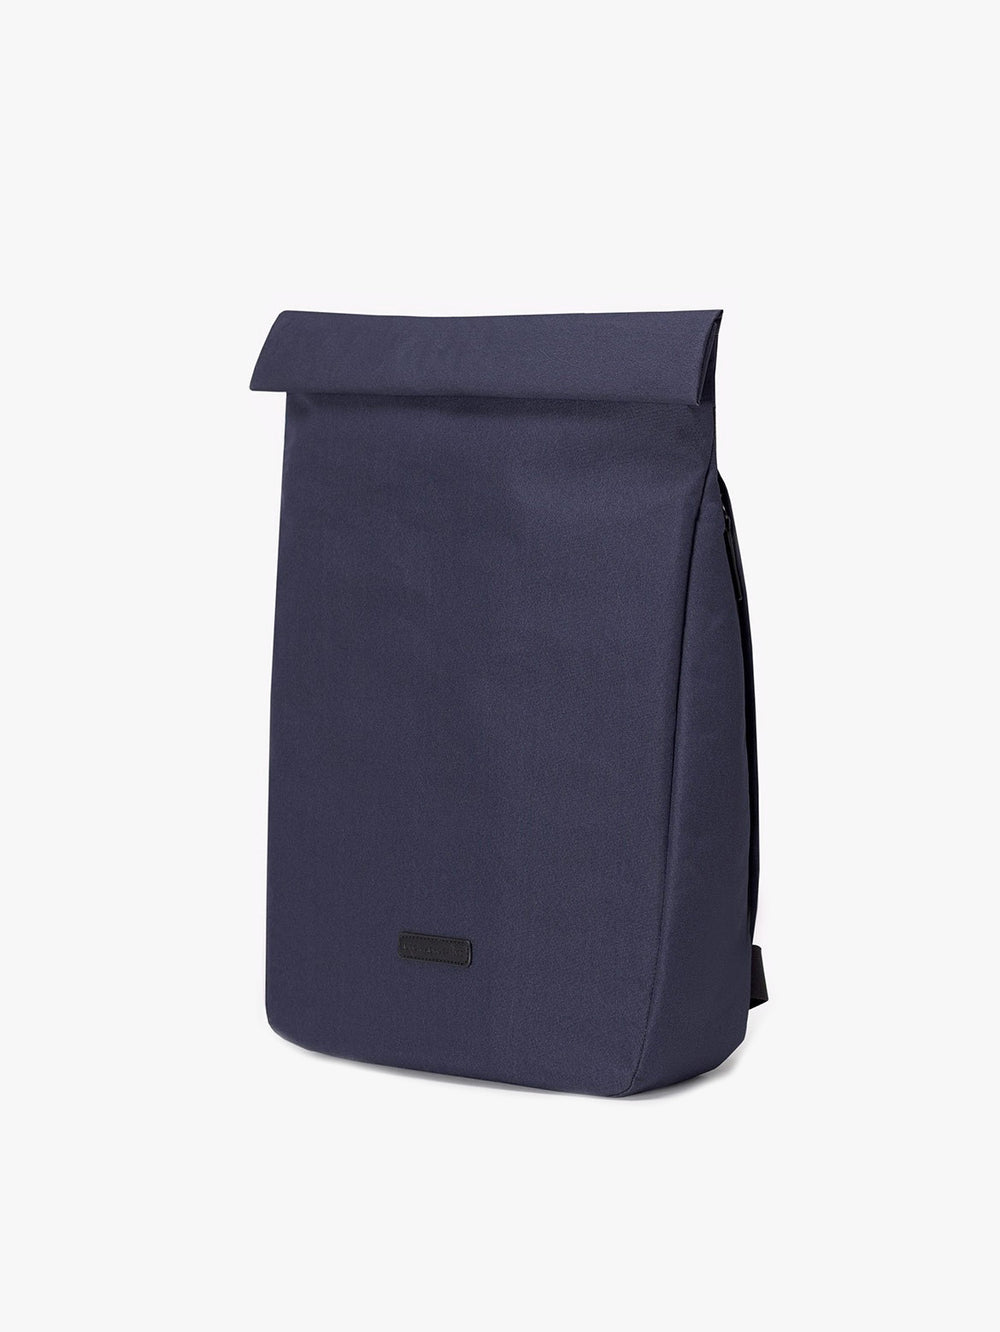 Roll top dark navy backpack designed by Ucon Acrobatics